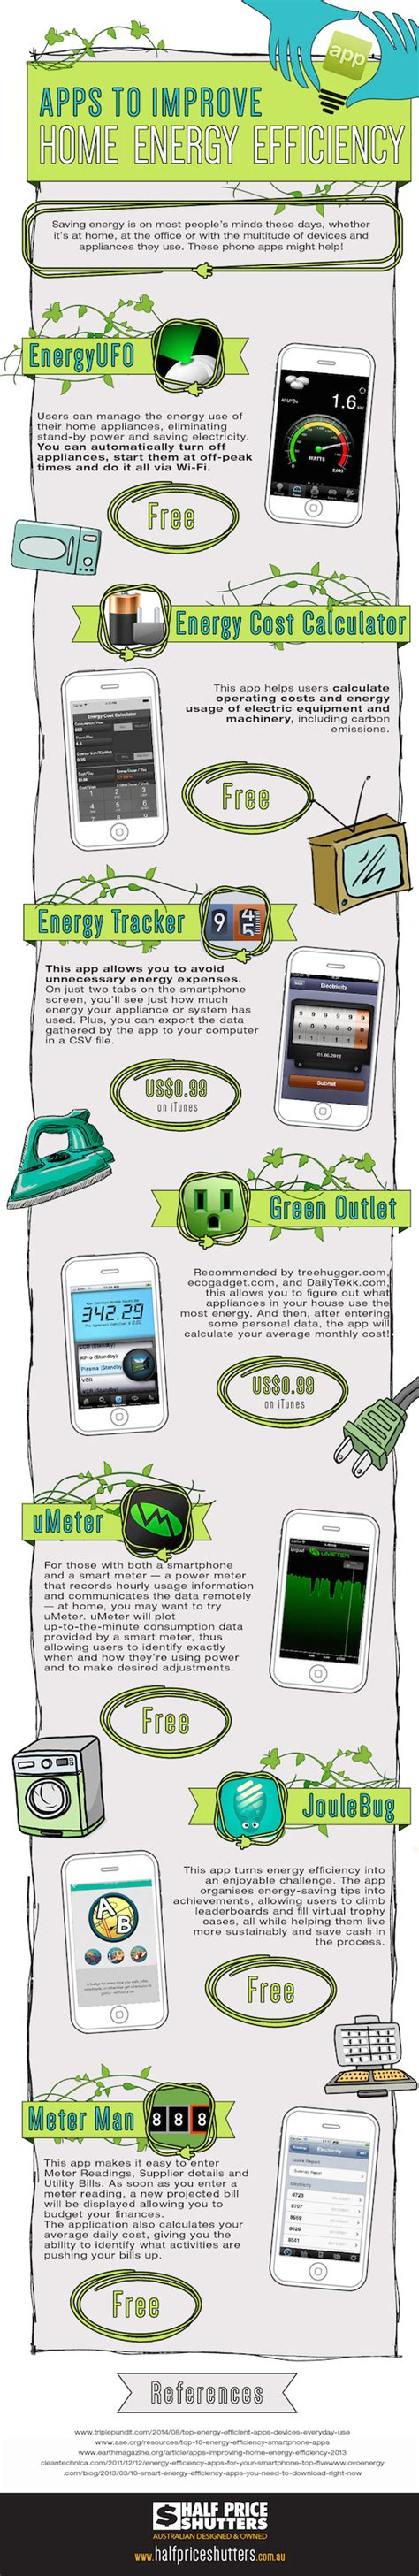 infographic free and low cost smartphone apps to improve